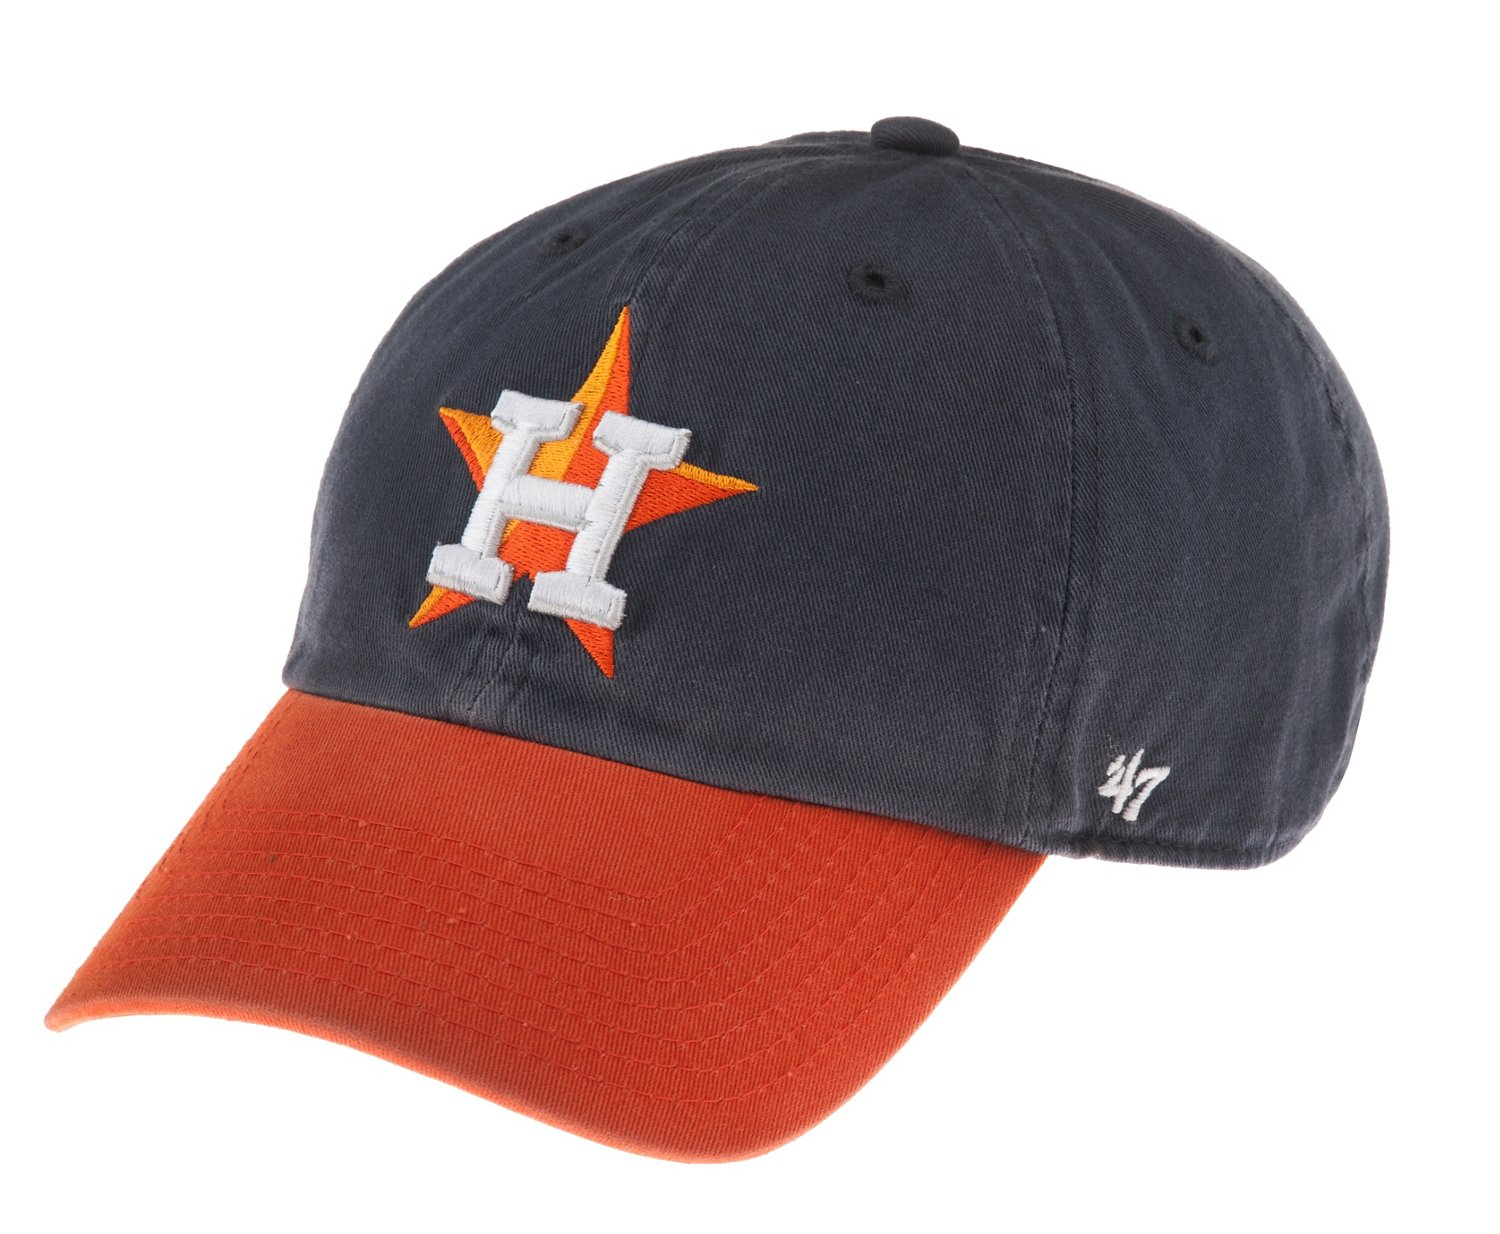 15313b9b5 Display product reviews for '47 Adults' Houston Astros Clean Up Cap This  product is currently selected. '